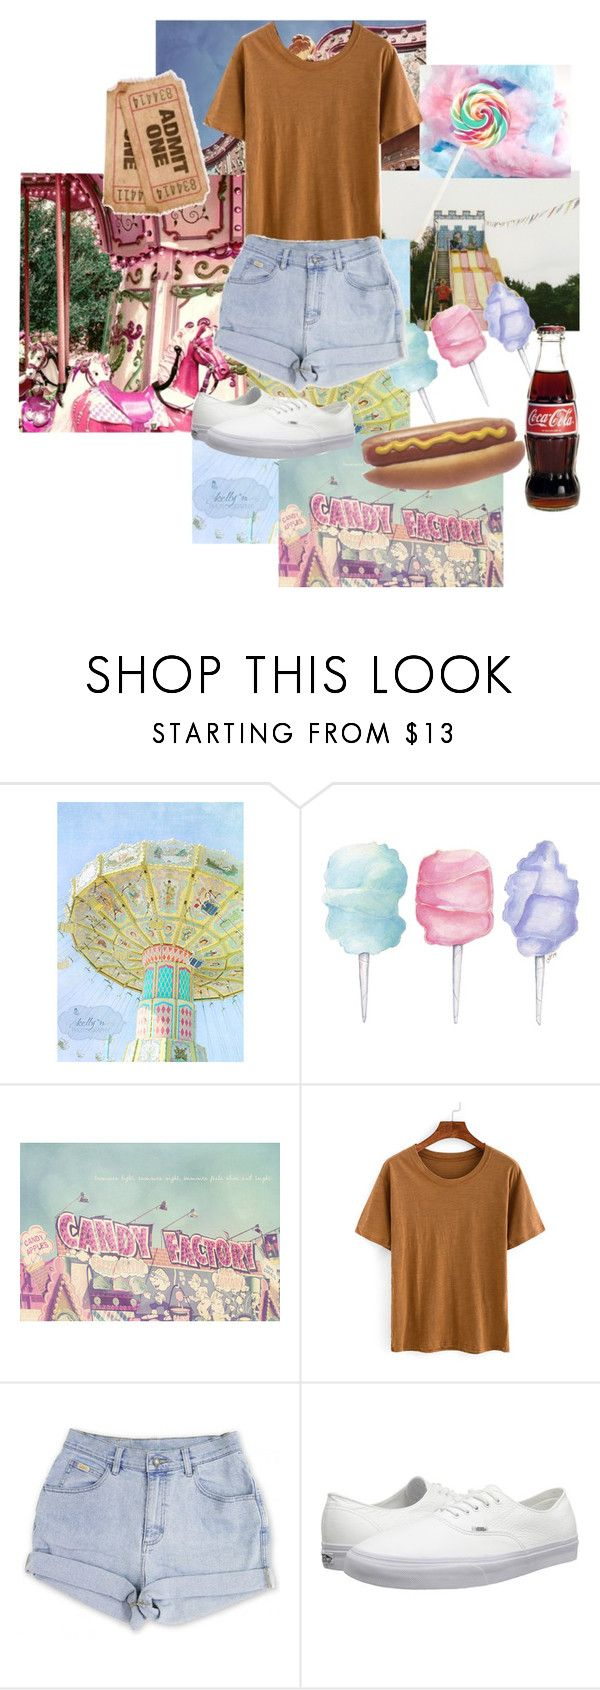 """""""State fair outfit"""" by dancing-in-the-lightxx ❤ liked on Polyvore featuring Cotton Candy, Vans, statefair and summerdate"""